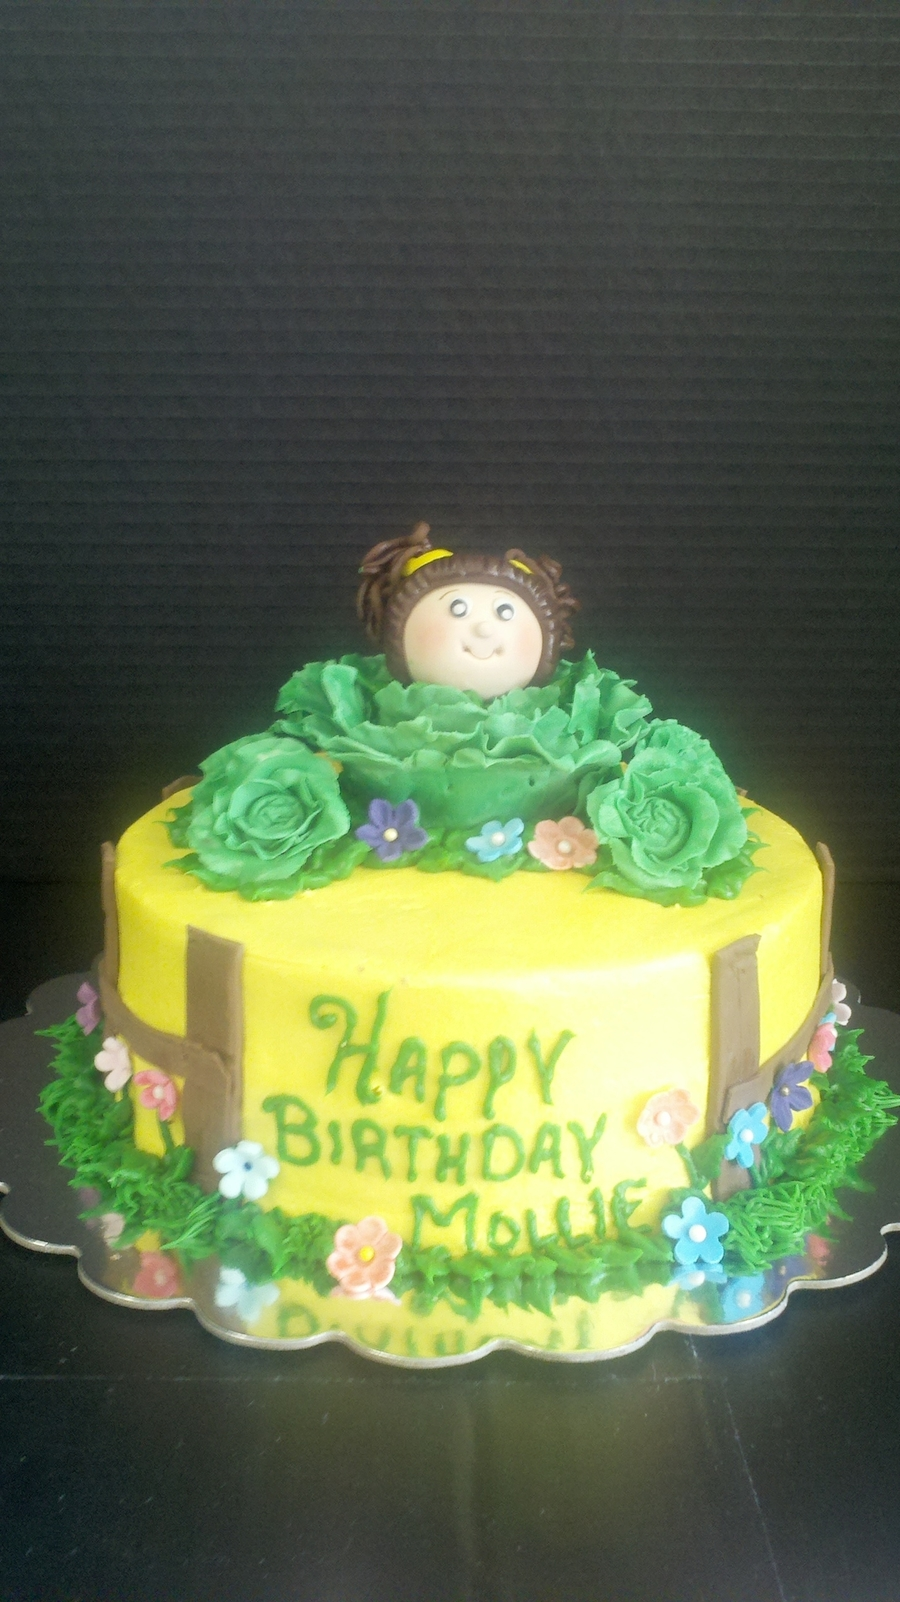 Cabbage Patch on Cake Central